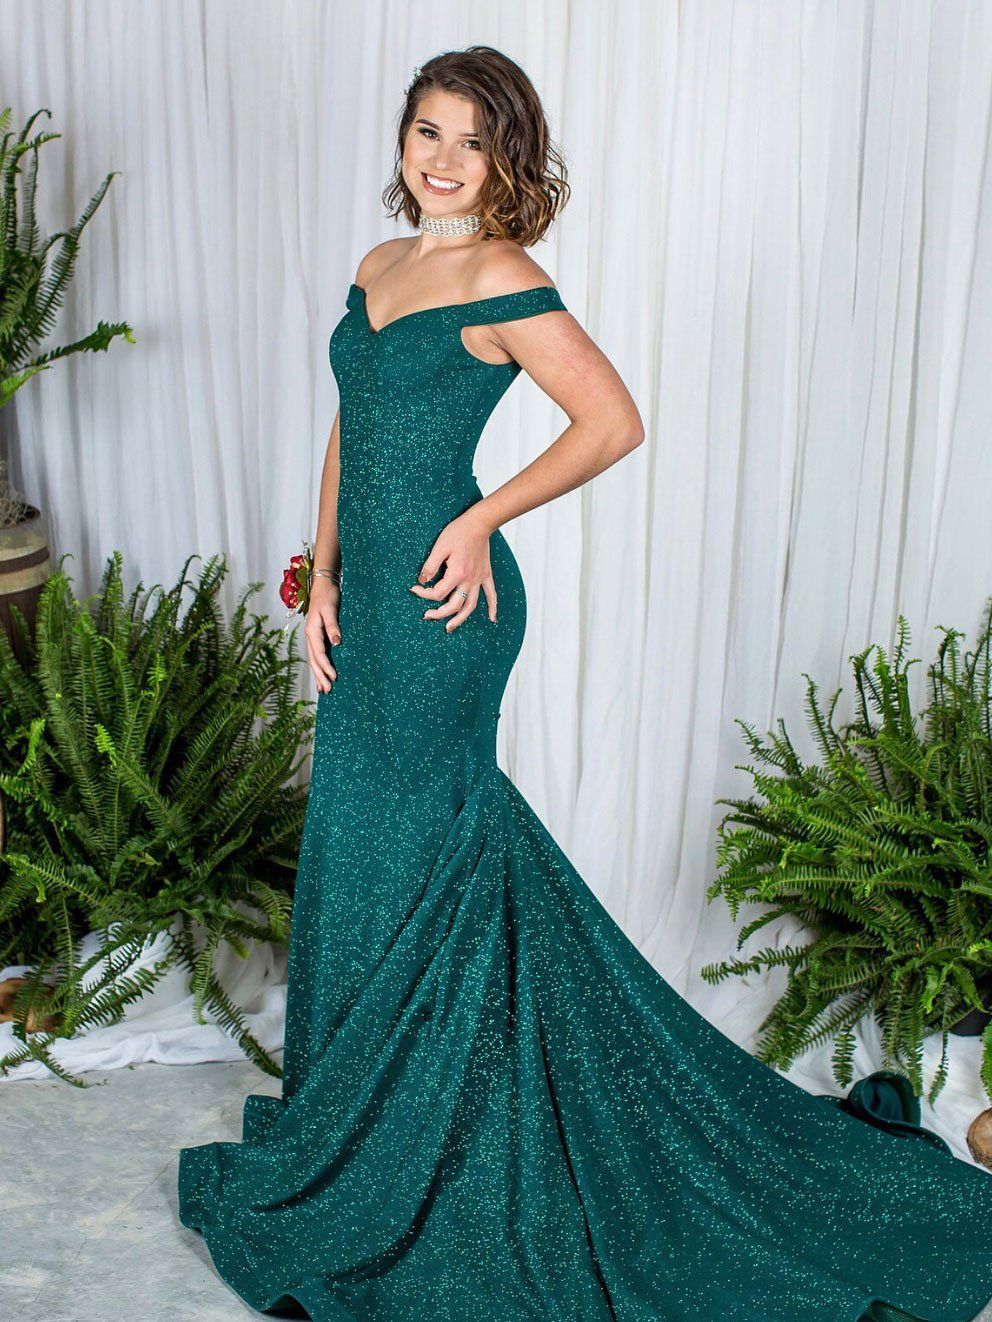 Off the shoulder mermaid prom dresses dart green sexy formal dresses